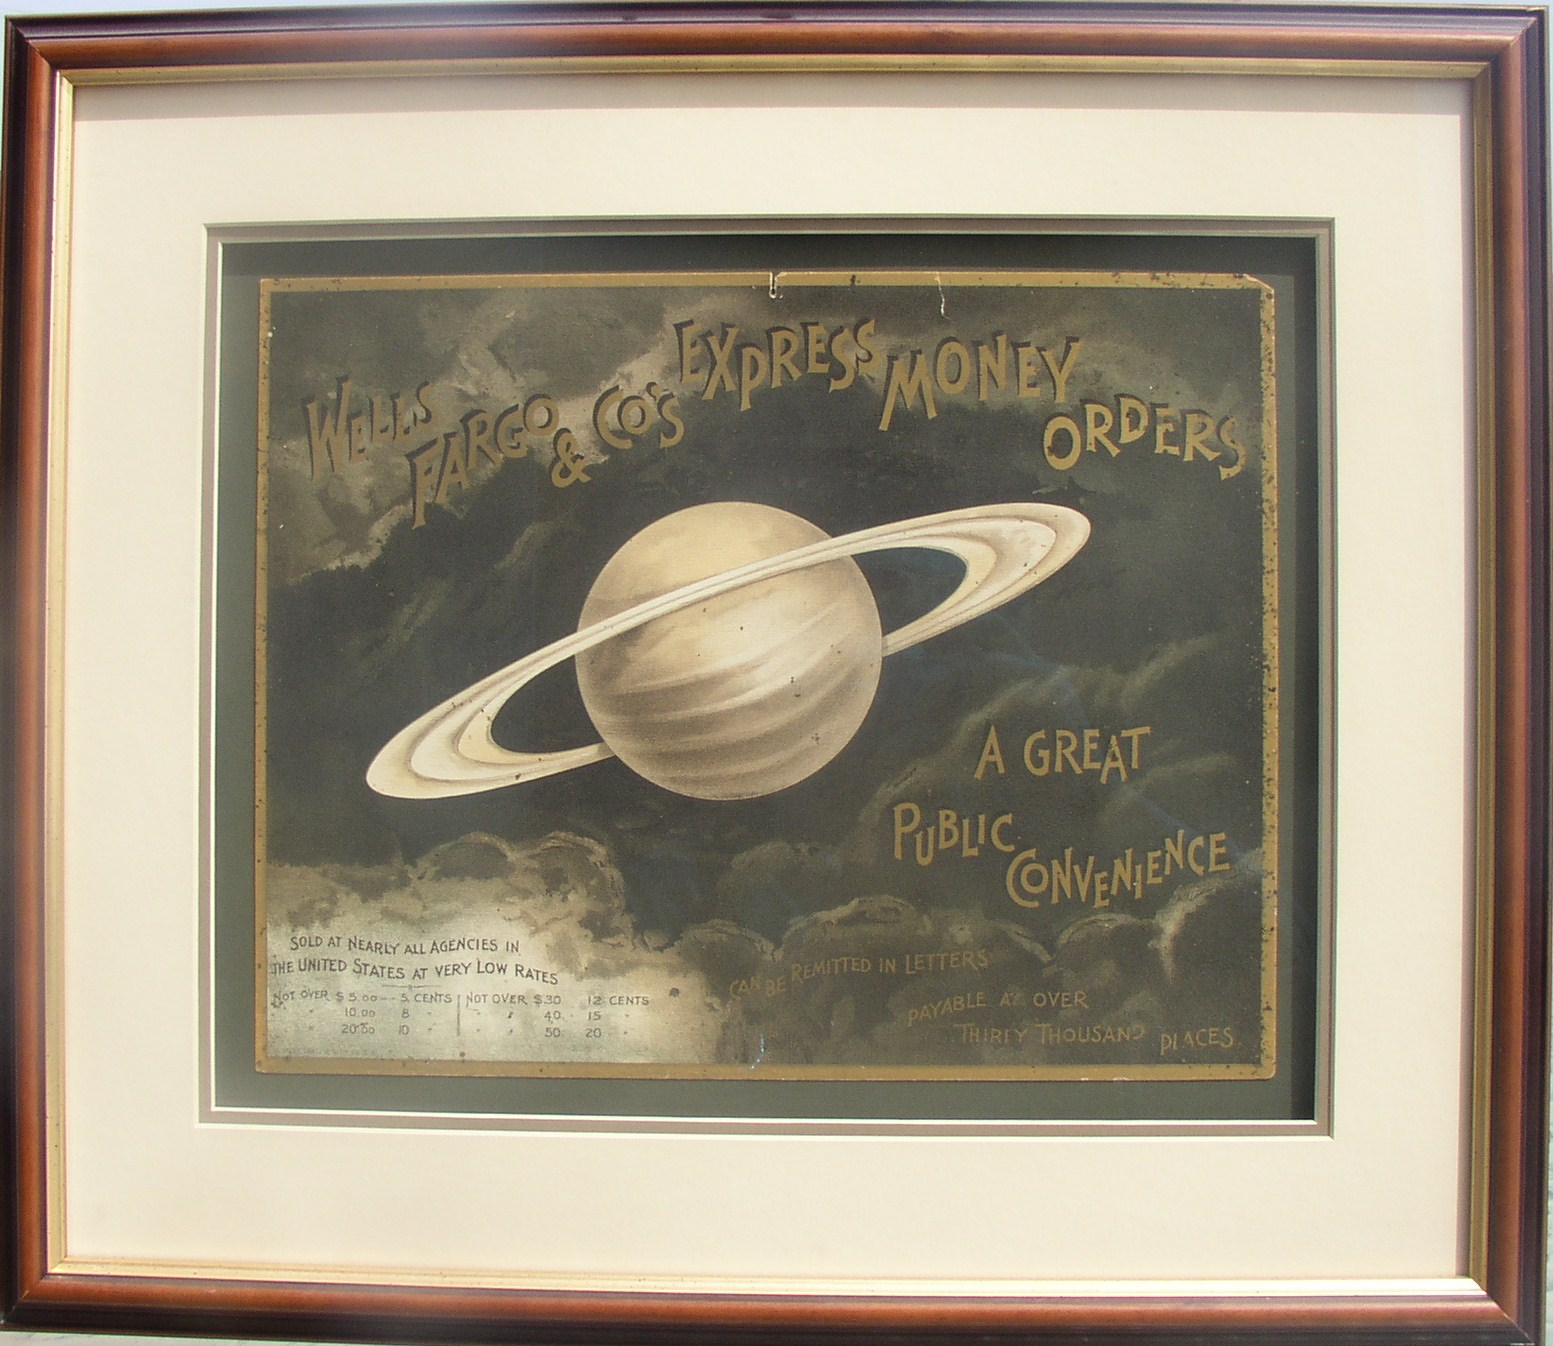 Wells Fargo & Co.'s Saturn Money Order Poster